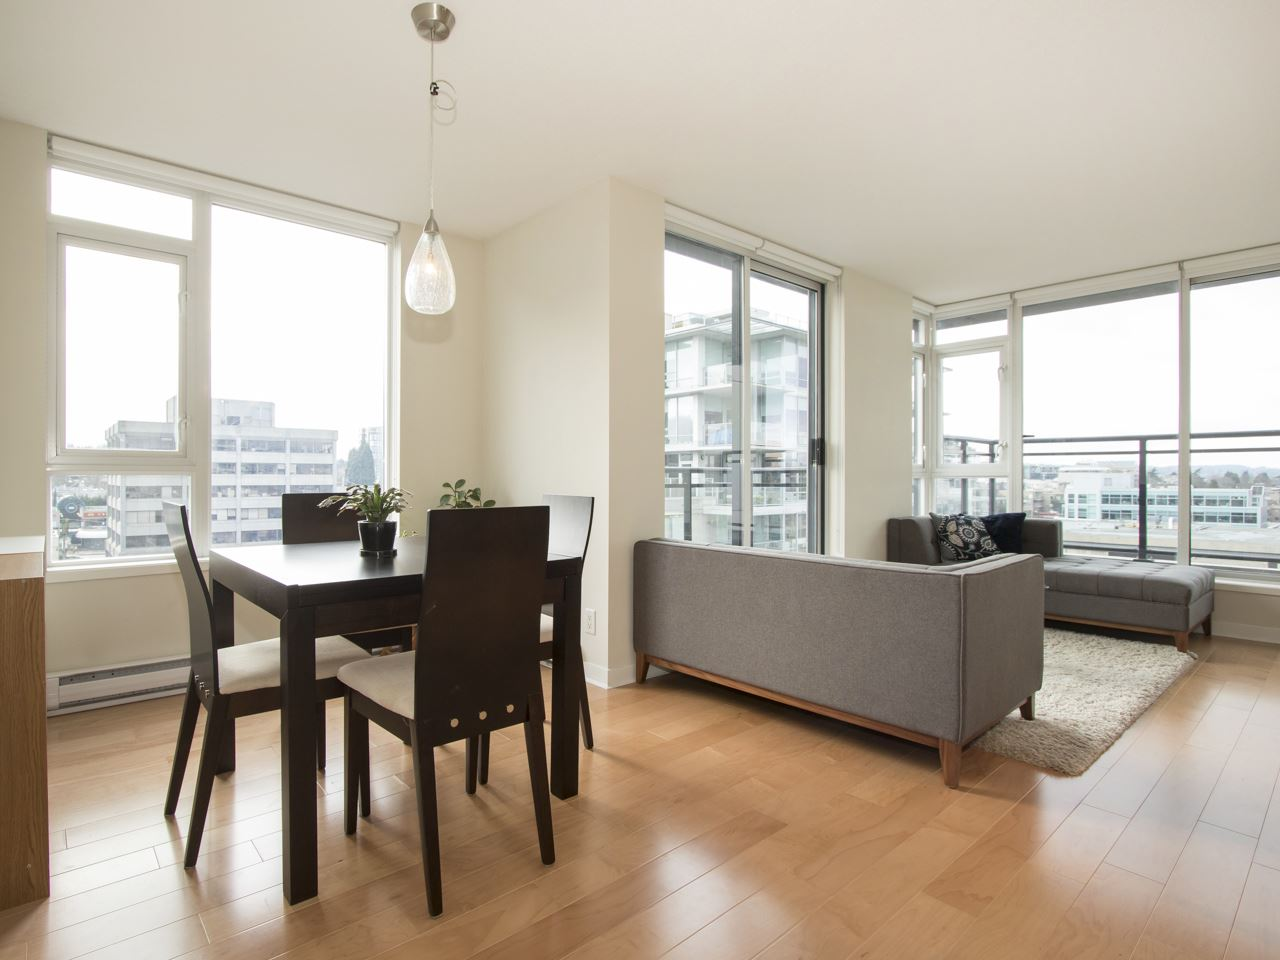 Photo 2: 1002 1650 W 7TH AVENUE in Vancouver: Fairview VW Condo for sale (Vancouver West)  : MLS® # R2022214